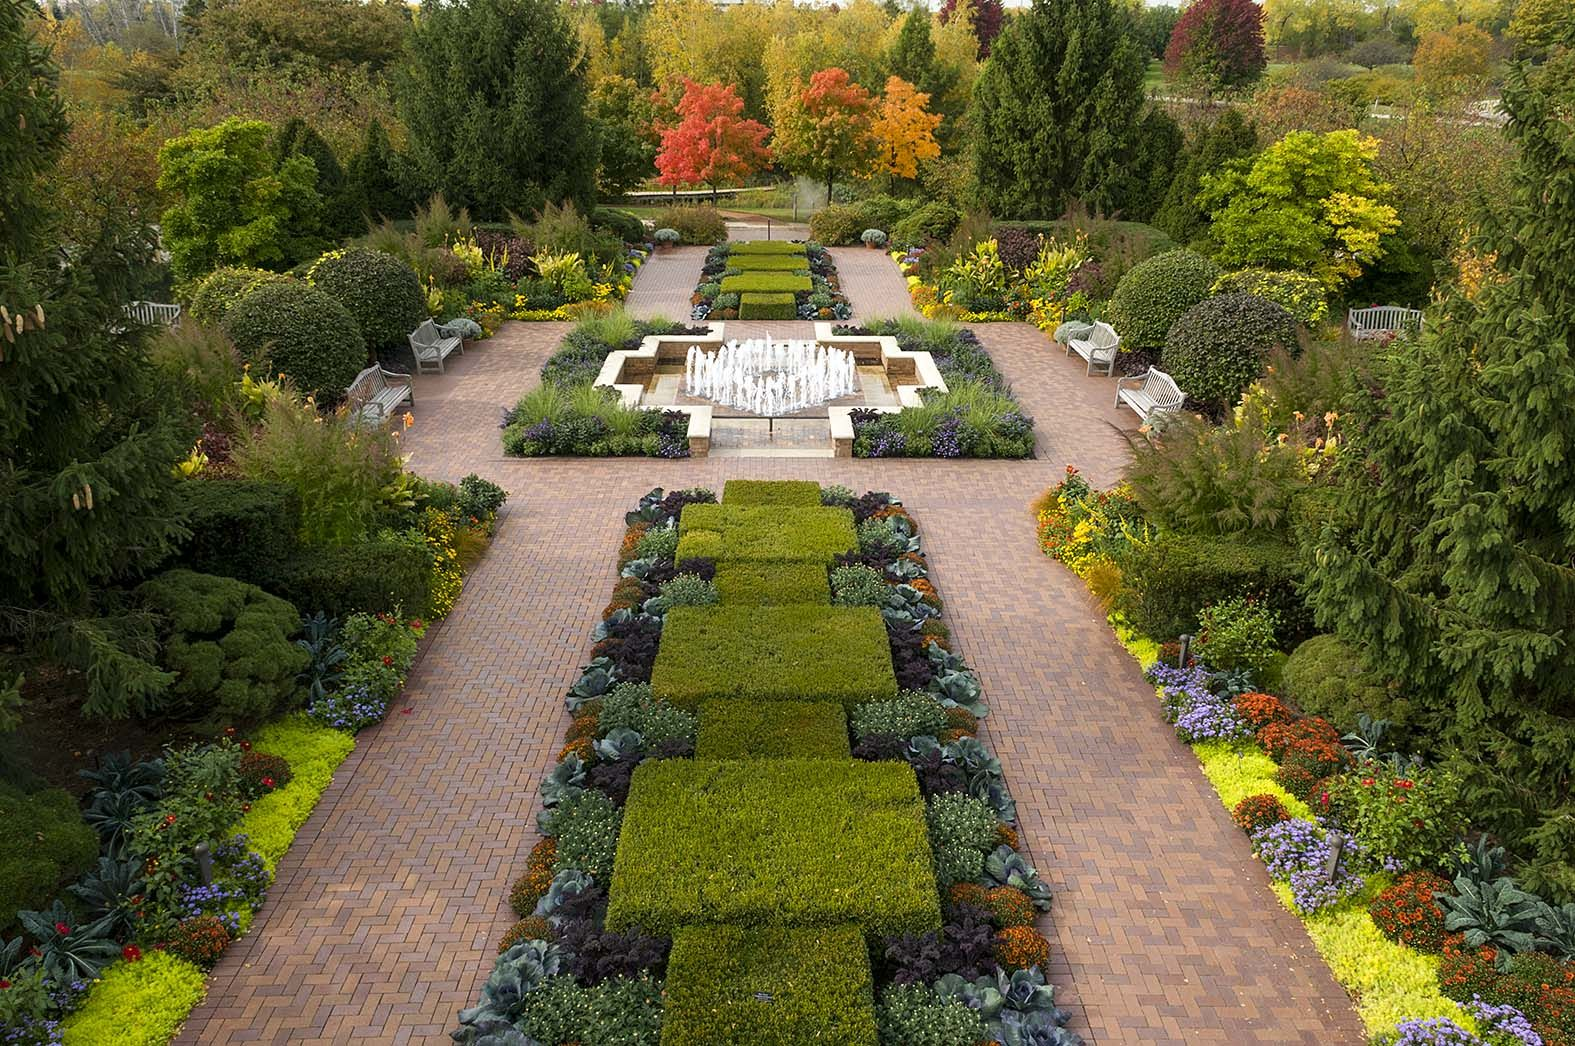 The Circle Garden at Chicago Botanic Garden Garden in